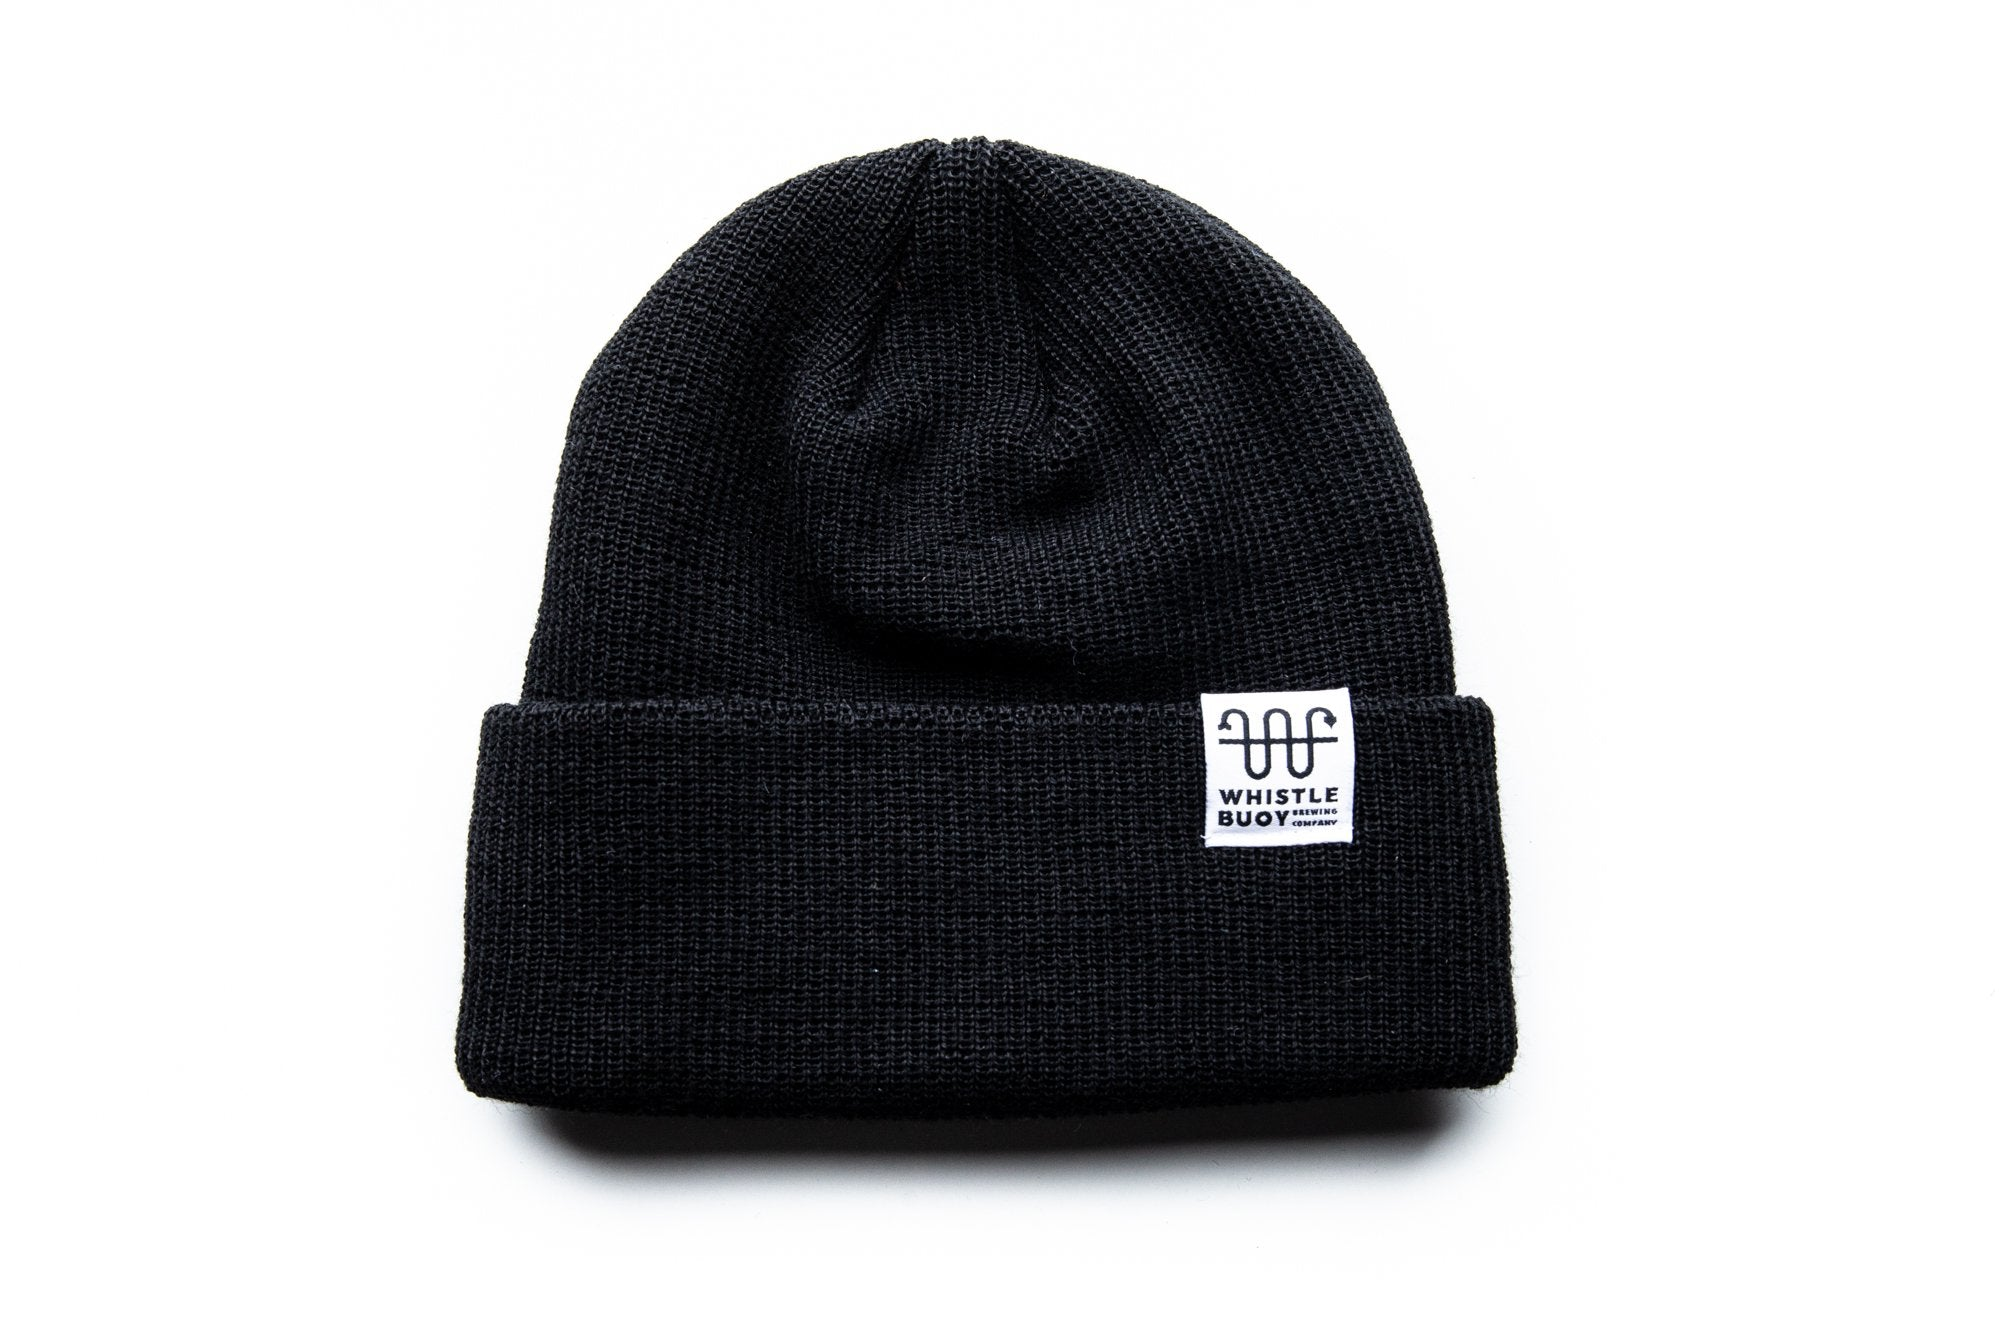 Whistle Buoy merino blend toque with white logo in black